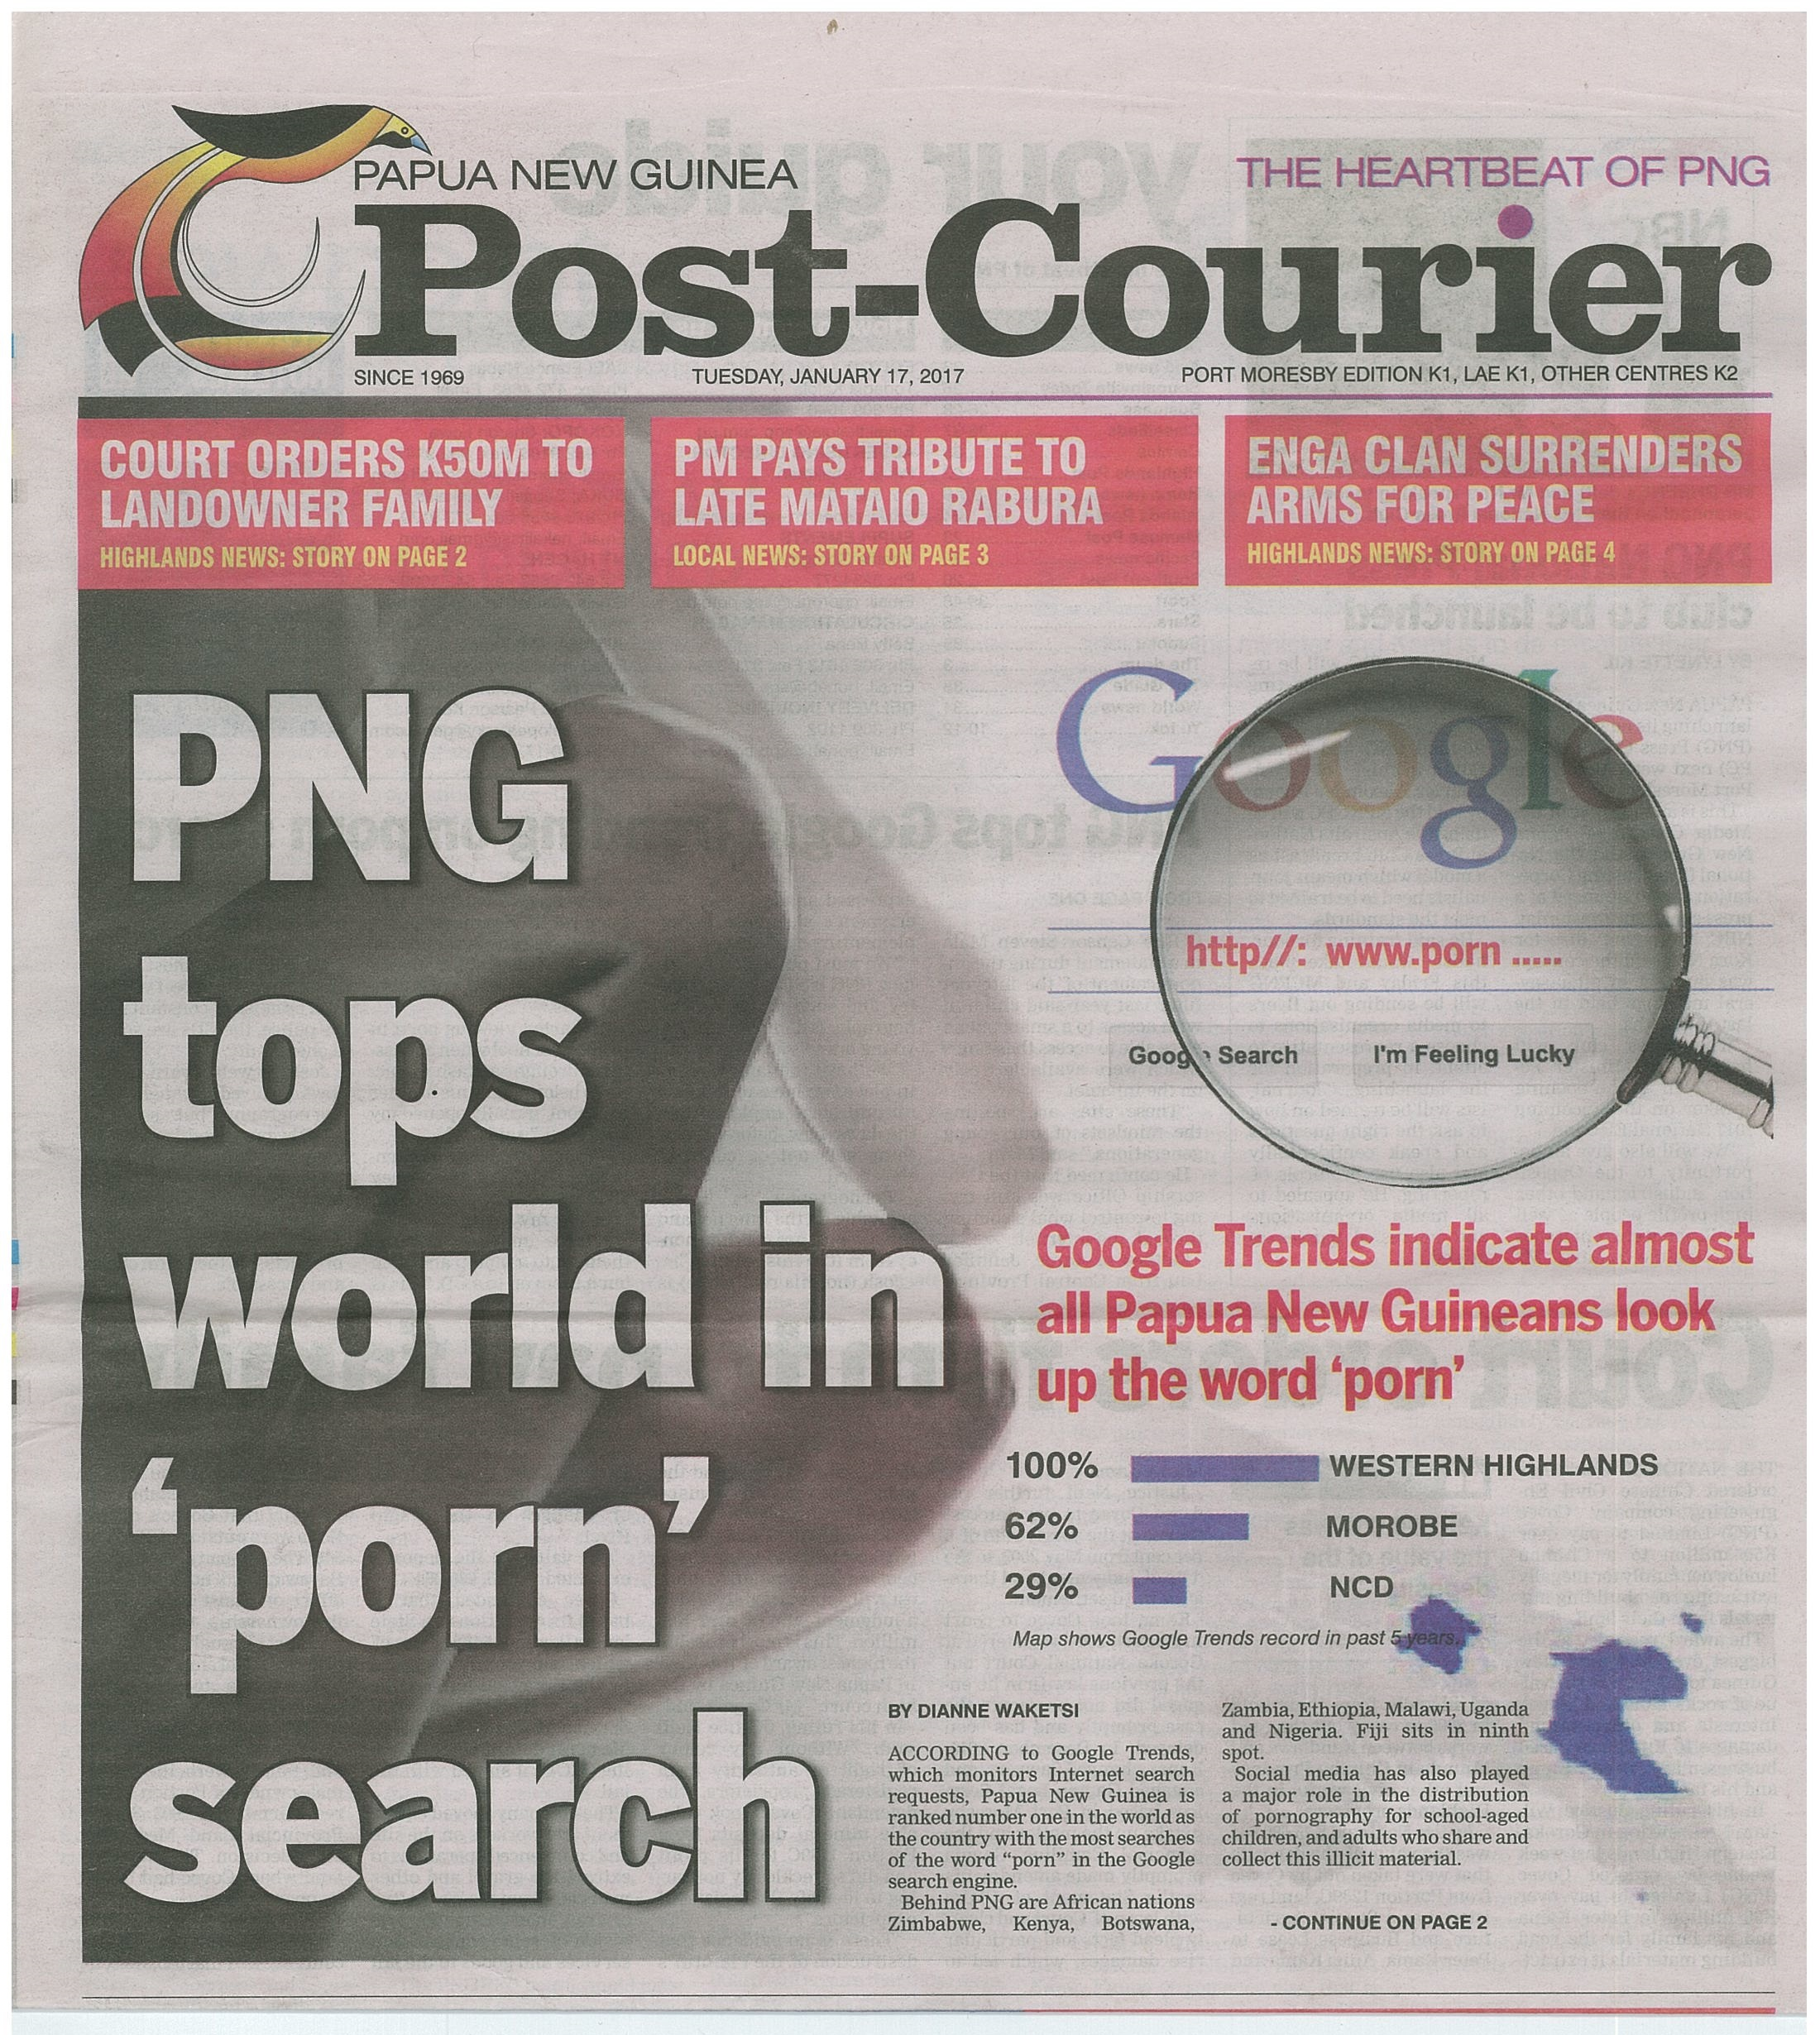 PNG tops world in 'porn' search' Post.